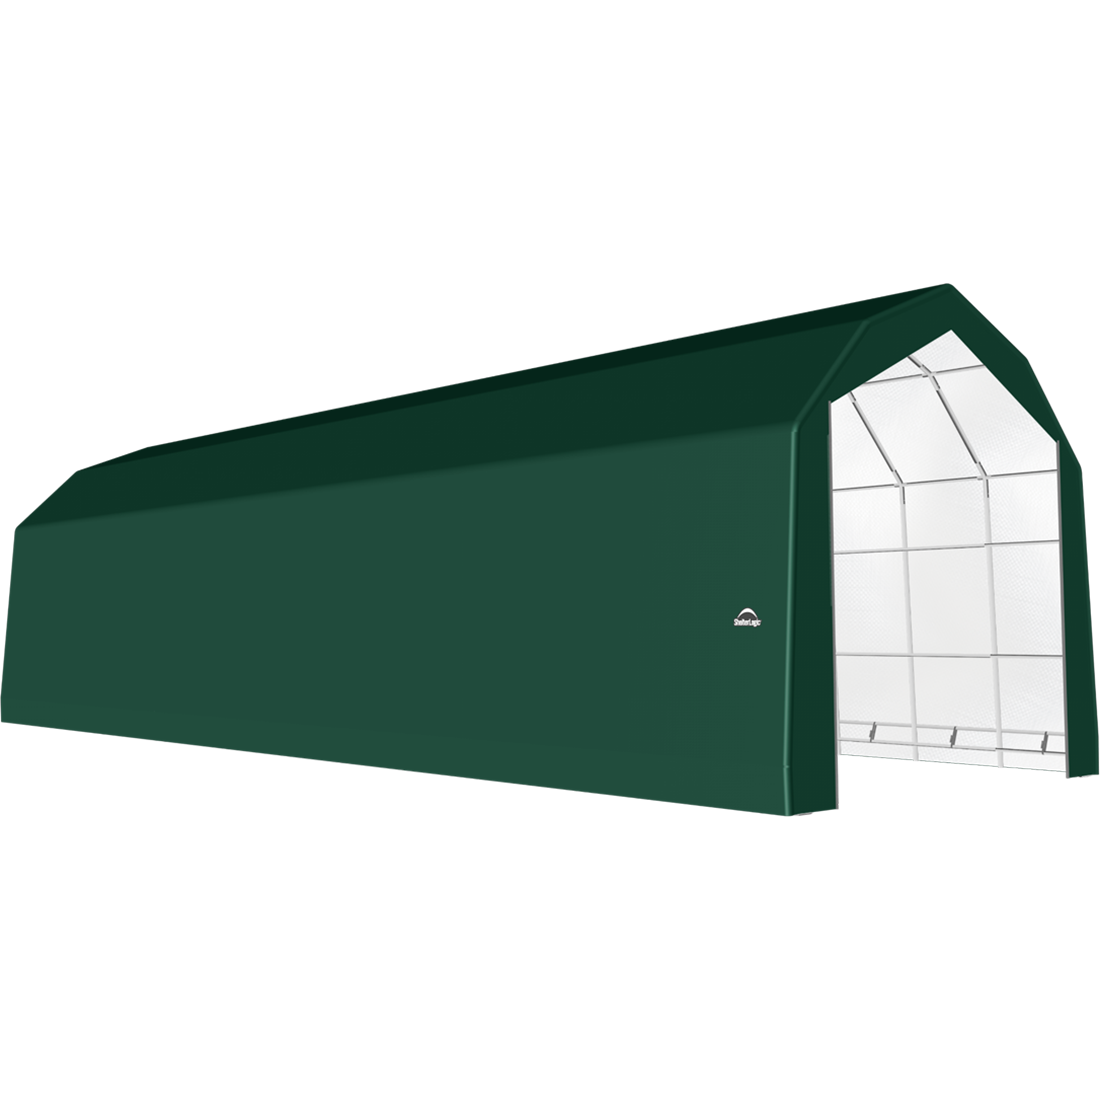 SP Barn 20X60X18 Green 14 oz PE Shelter